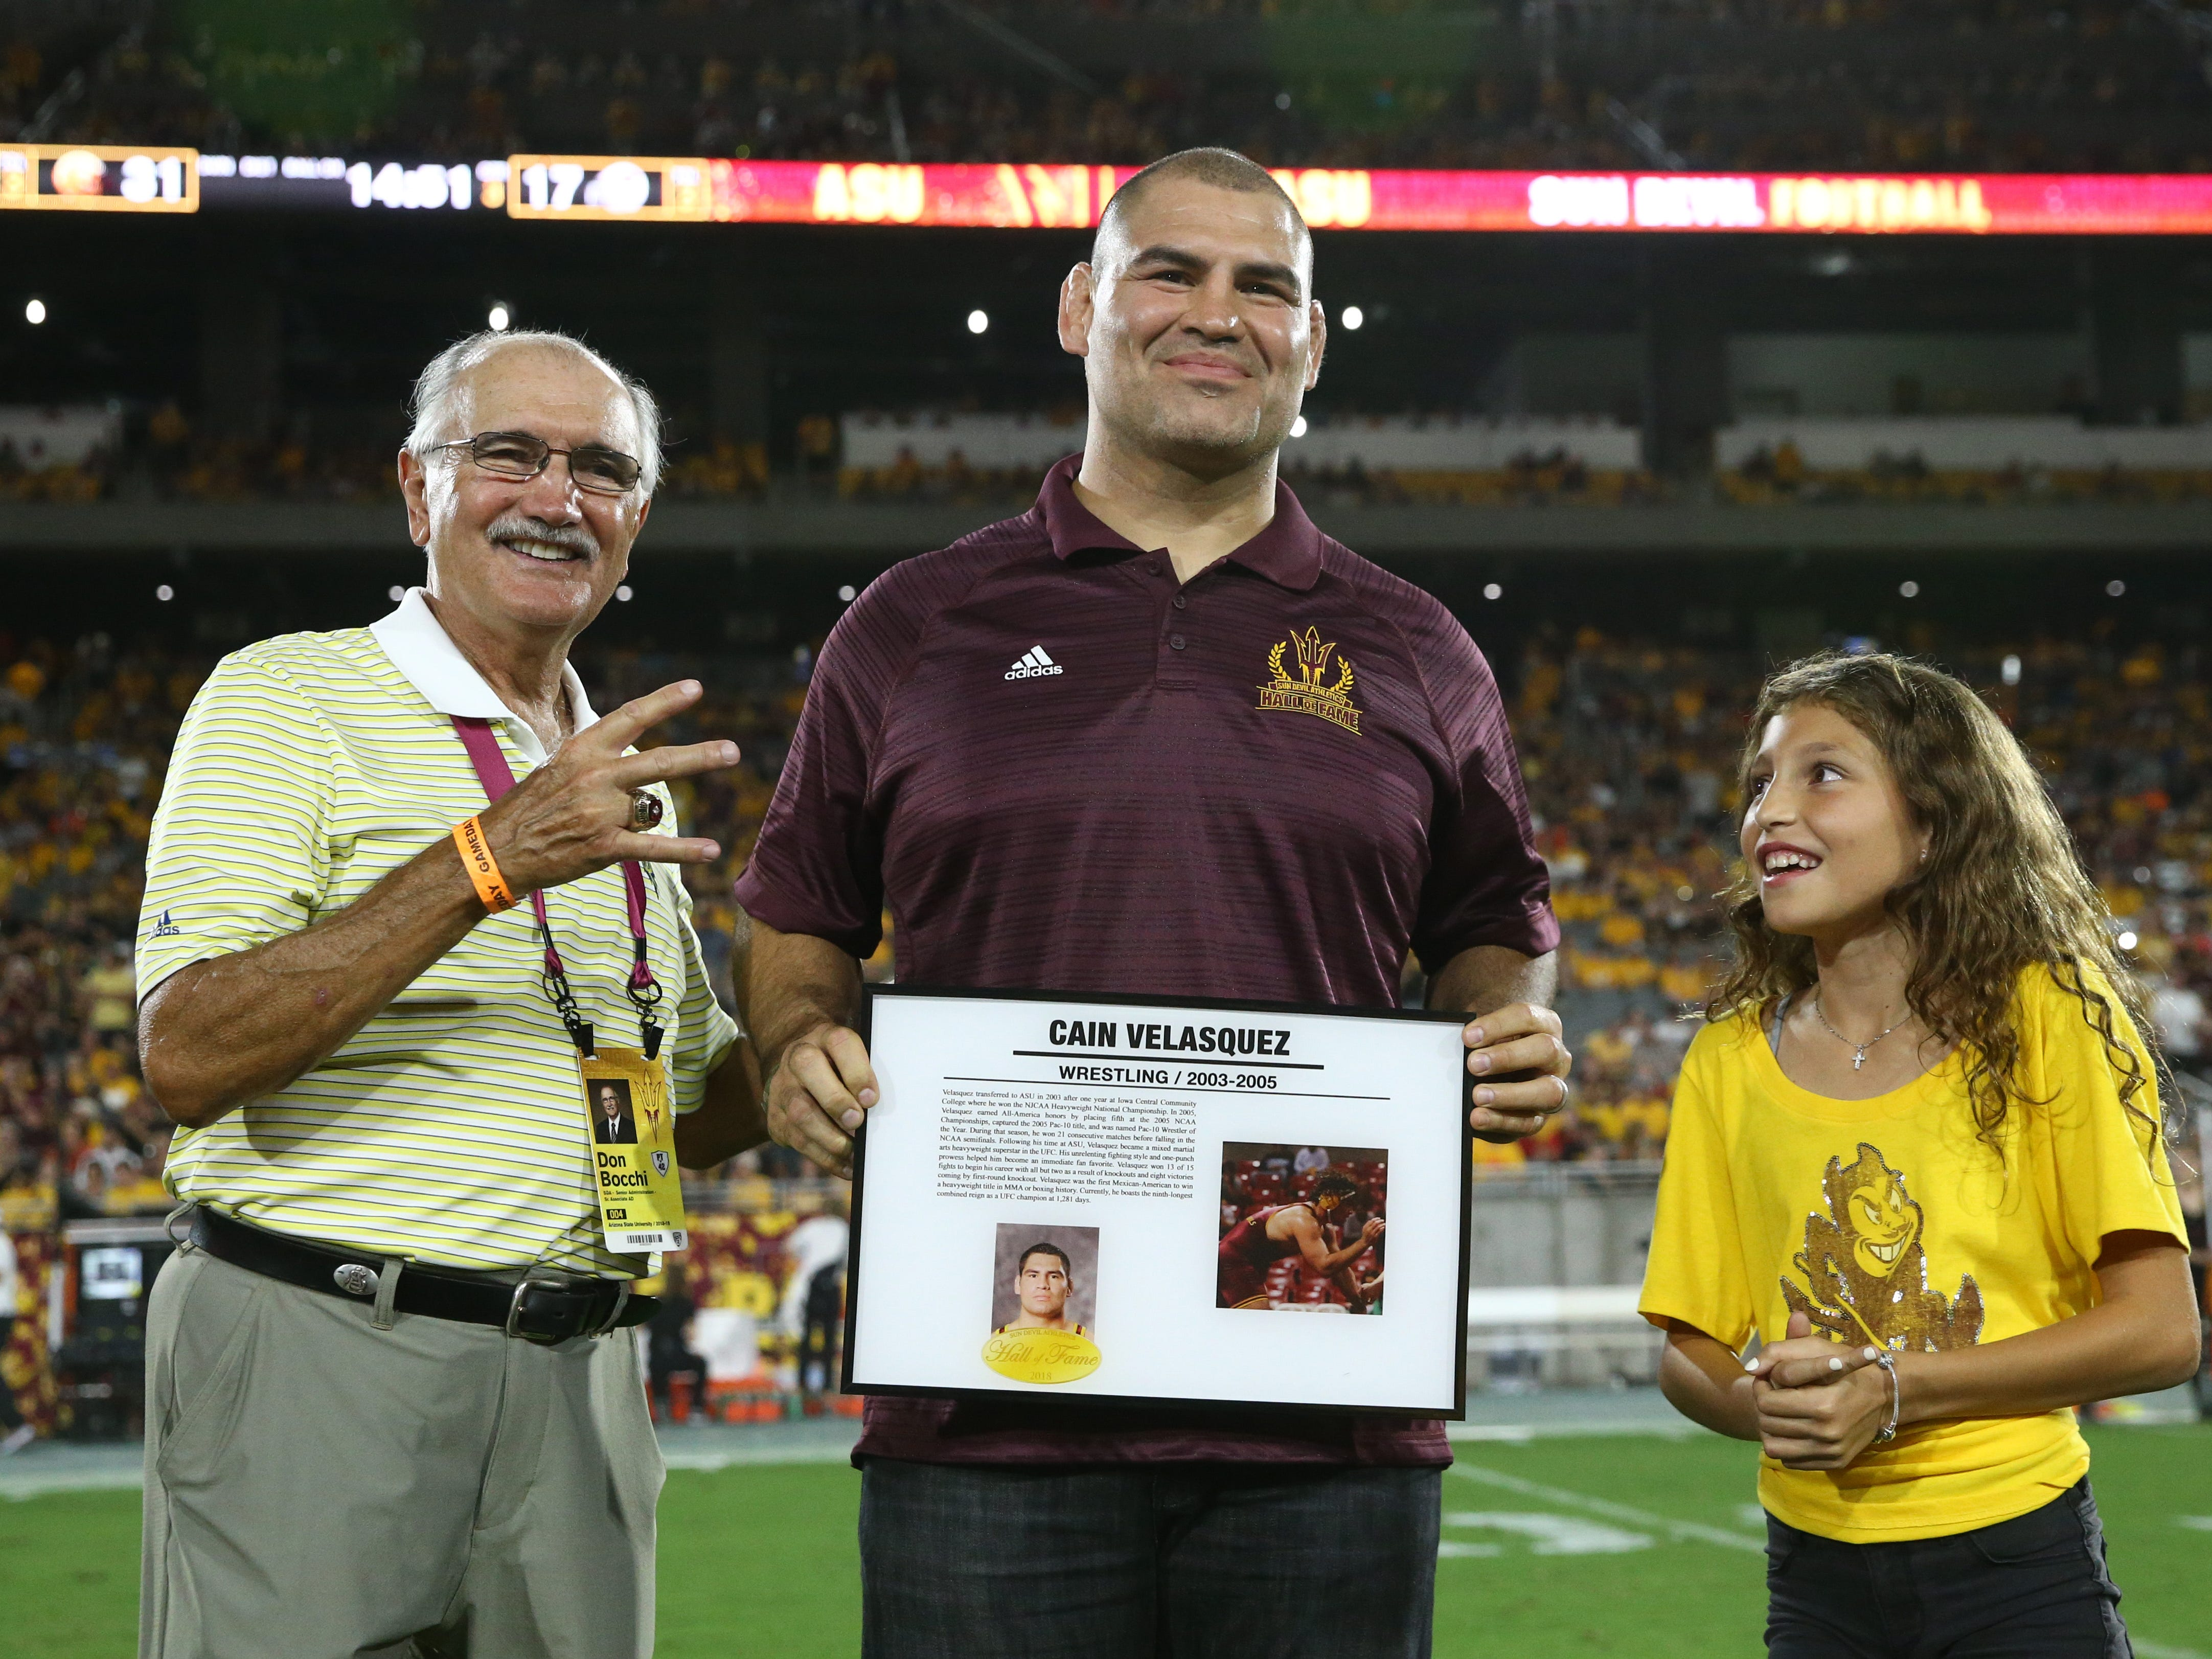 Arizona State wrestling star Cain Velasquez is welcomed into the ASU Athletics Hall of Frame on Sep. 29, 2018, at Sun Devil Stadium.